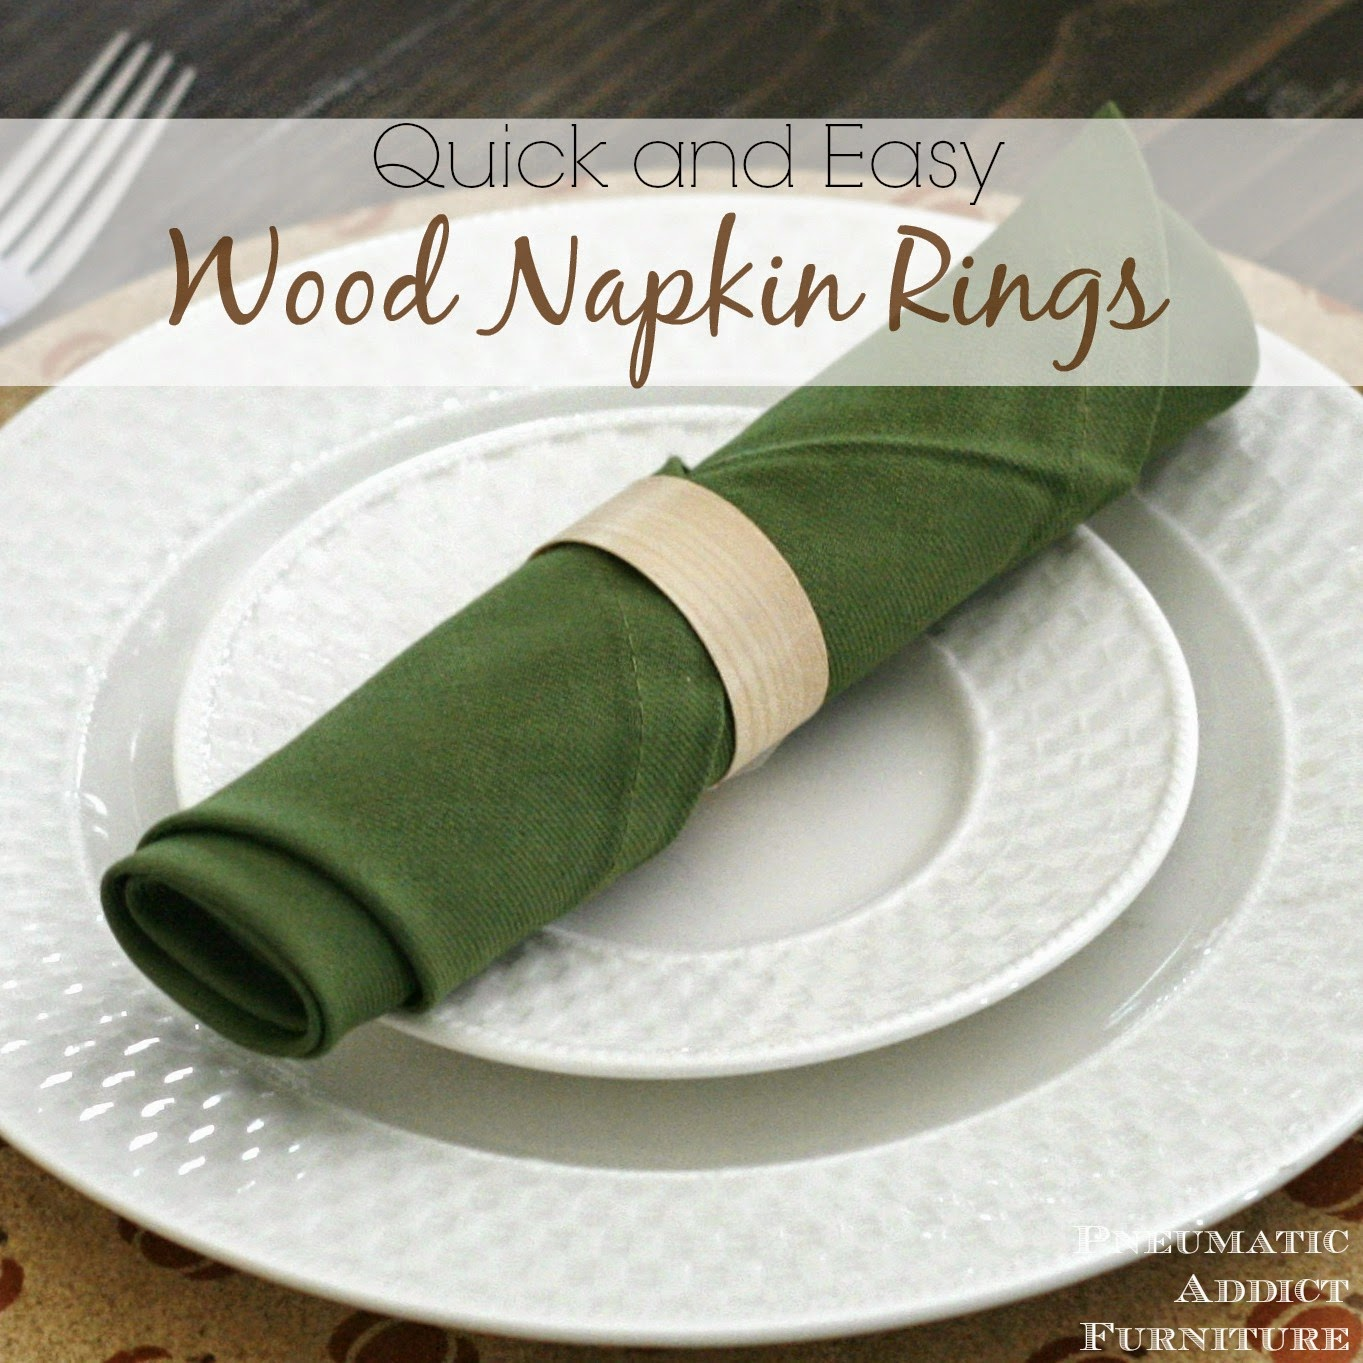 pneumatic addict and easy wood napkin rings